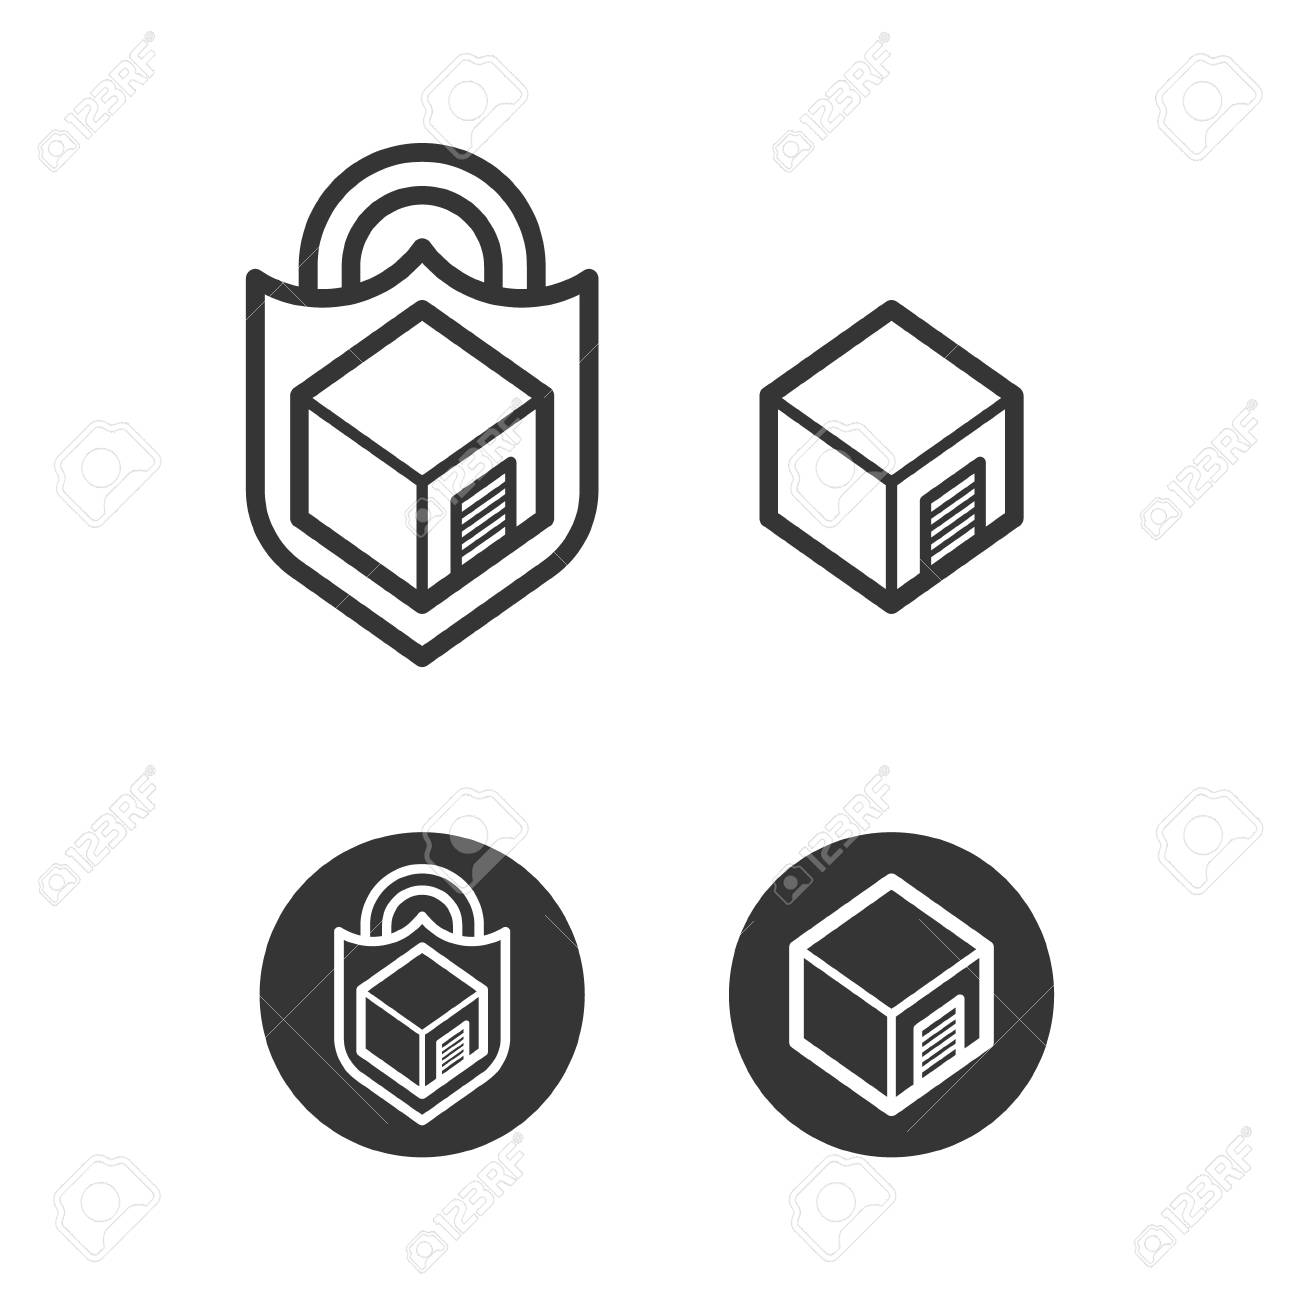 Self Storage Cube Logo Icons Royalty Free Cliparts, Vectors